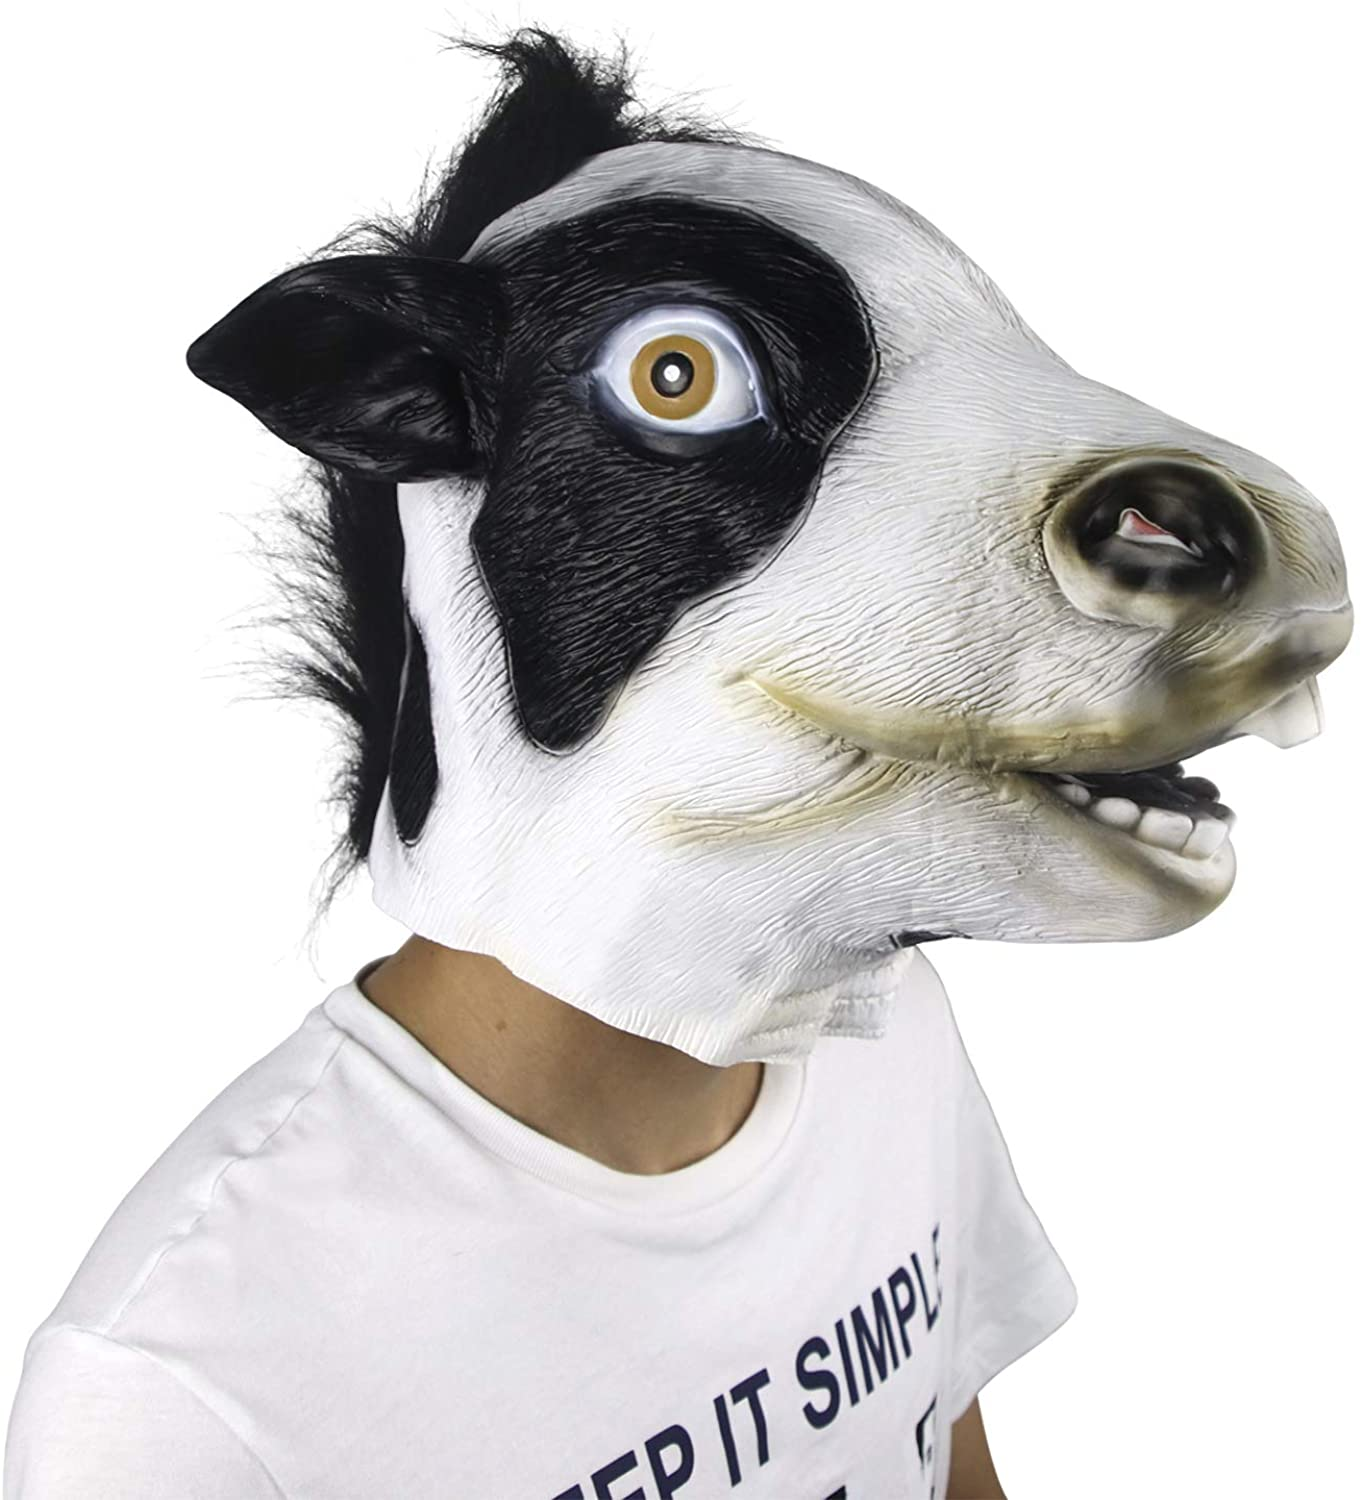 Demi Sharky Dairy Cow Mask Funny Halloween Costume Party Latex Animal Cosplay Full Head Adult White